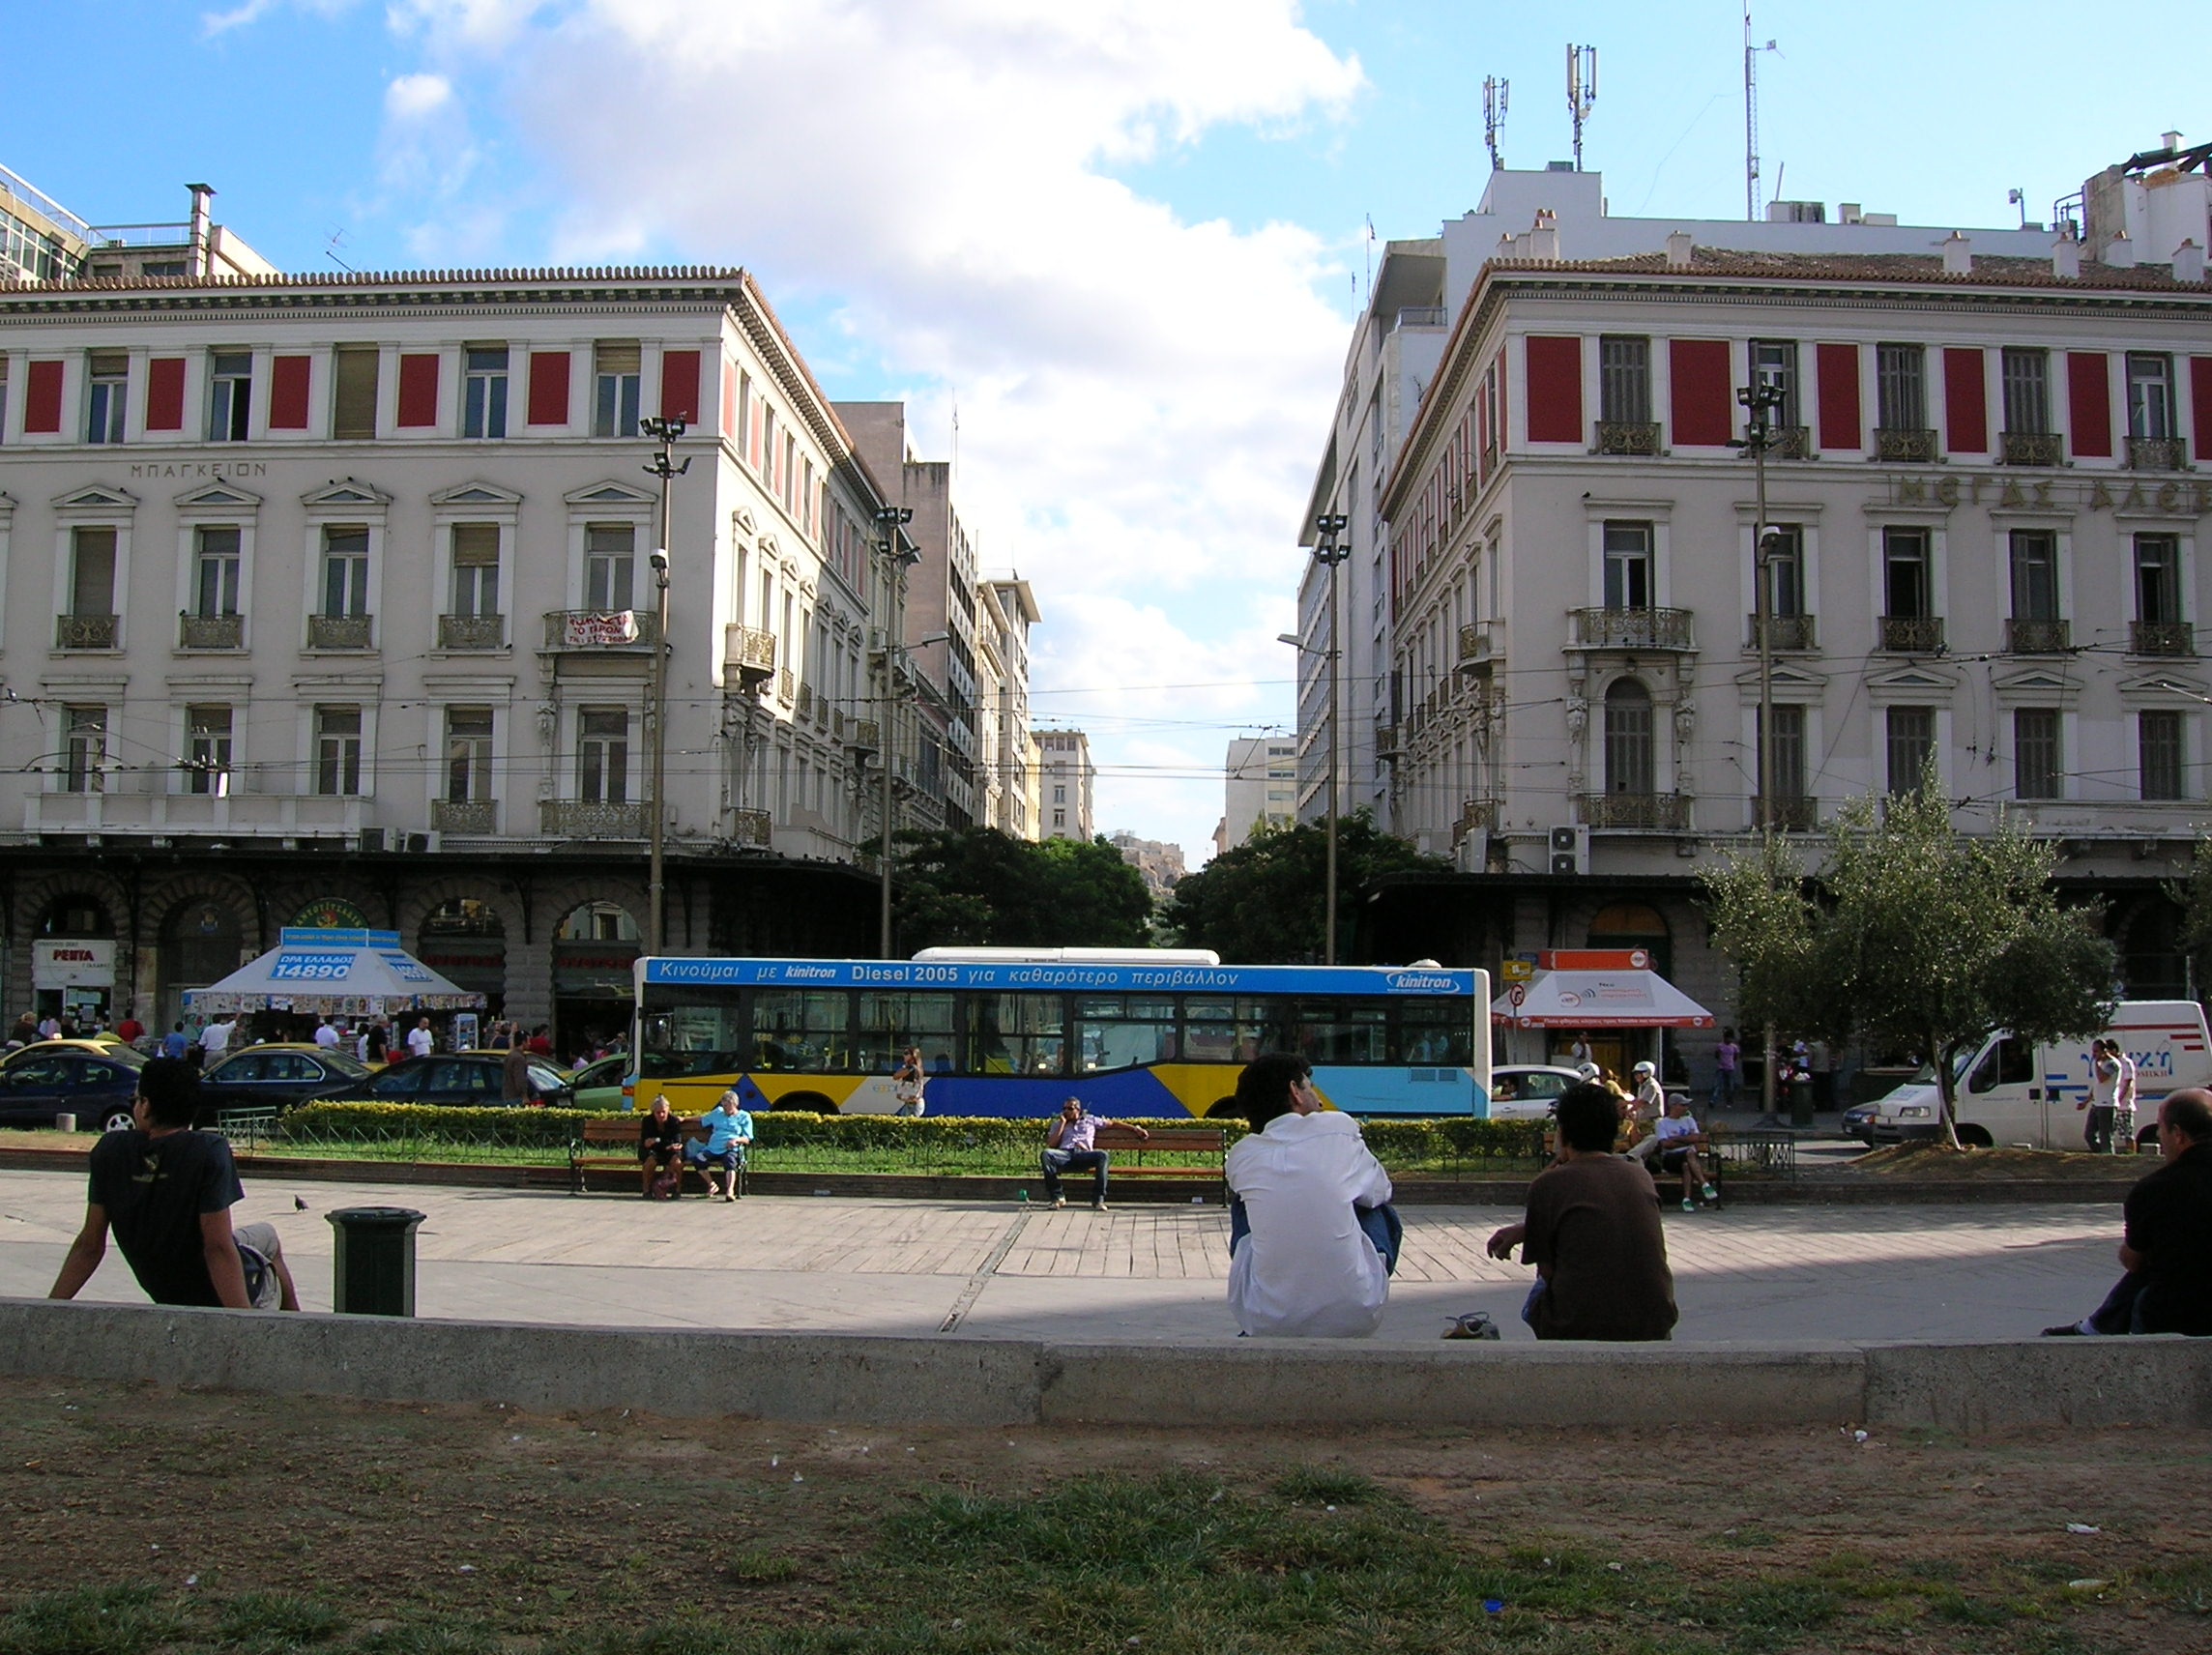 https://i0.wp.com/upload.wikimedia.org/wikipedia/commons/4/40/Omonia_Athens_2.jpg